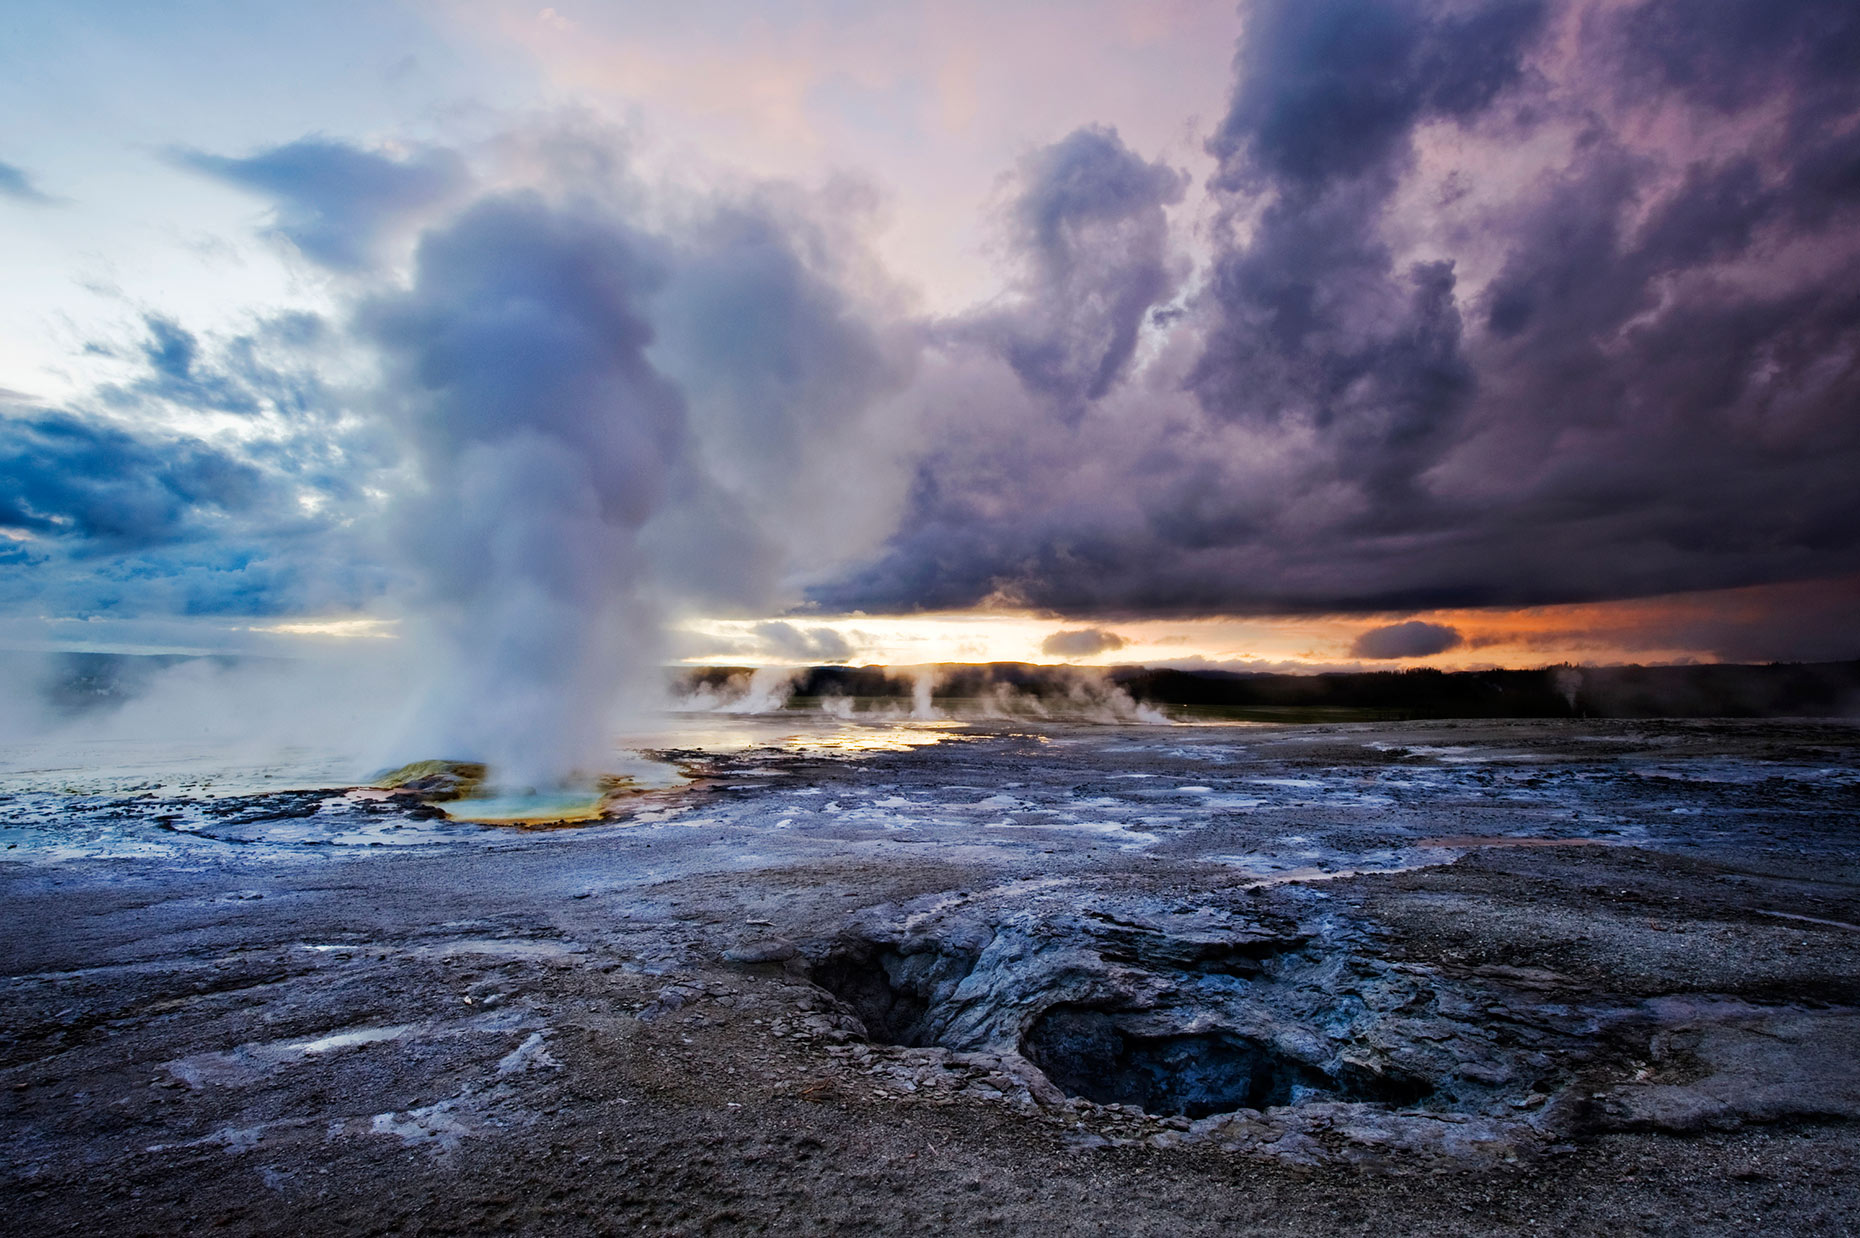 Clepsydra Geyser At Sunset - Yellowstone National Park, Wyoming